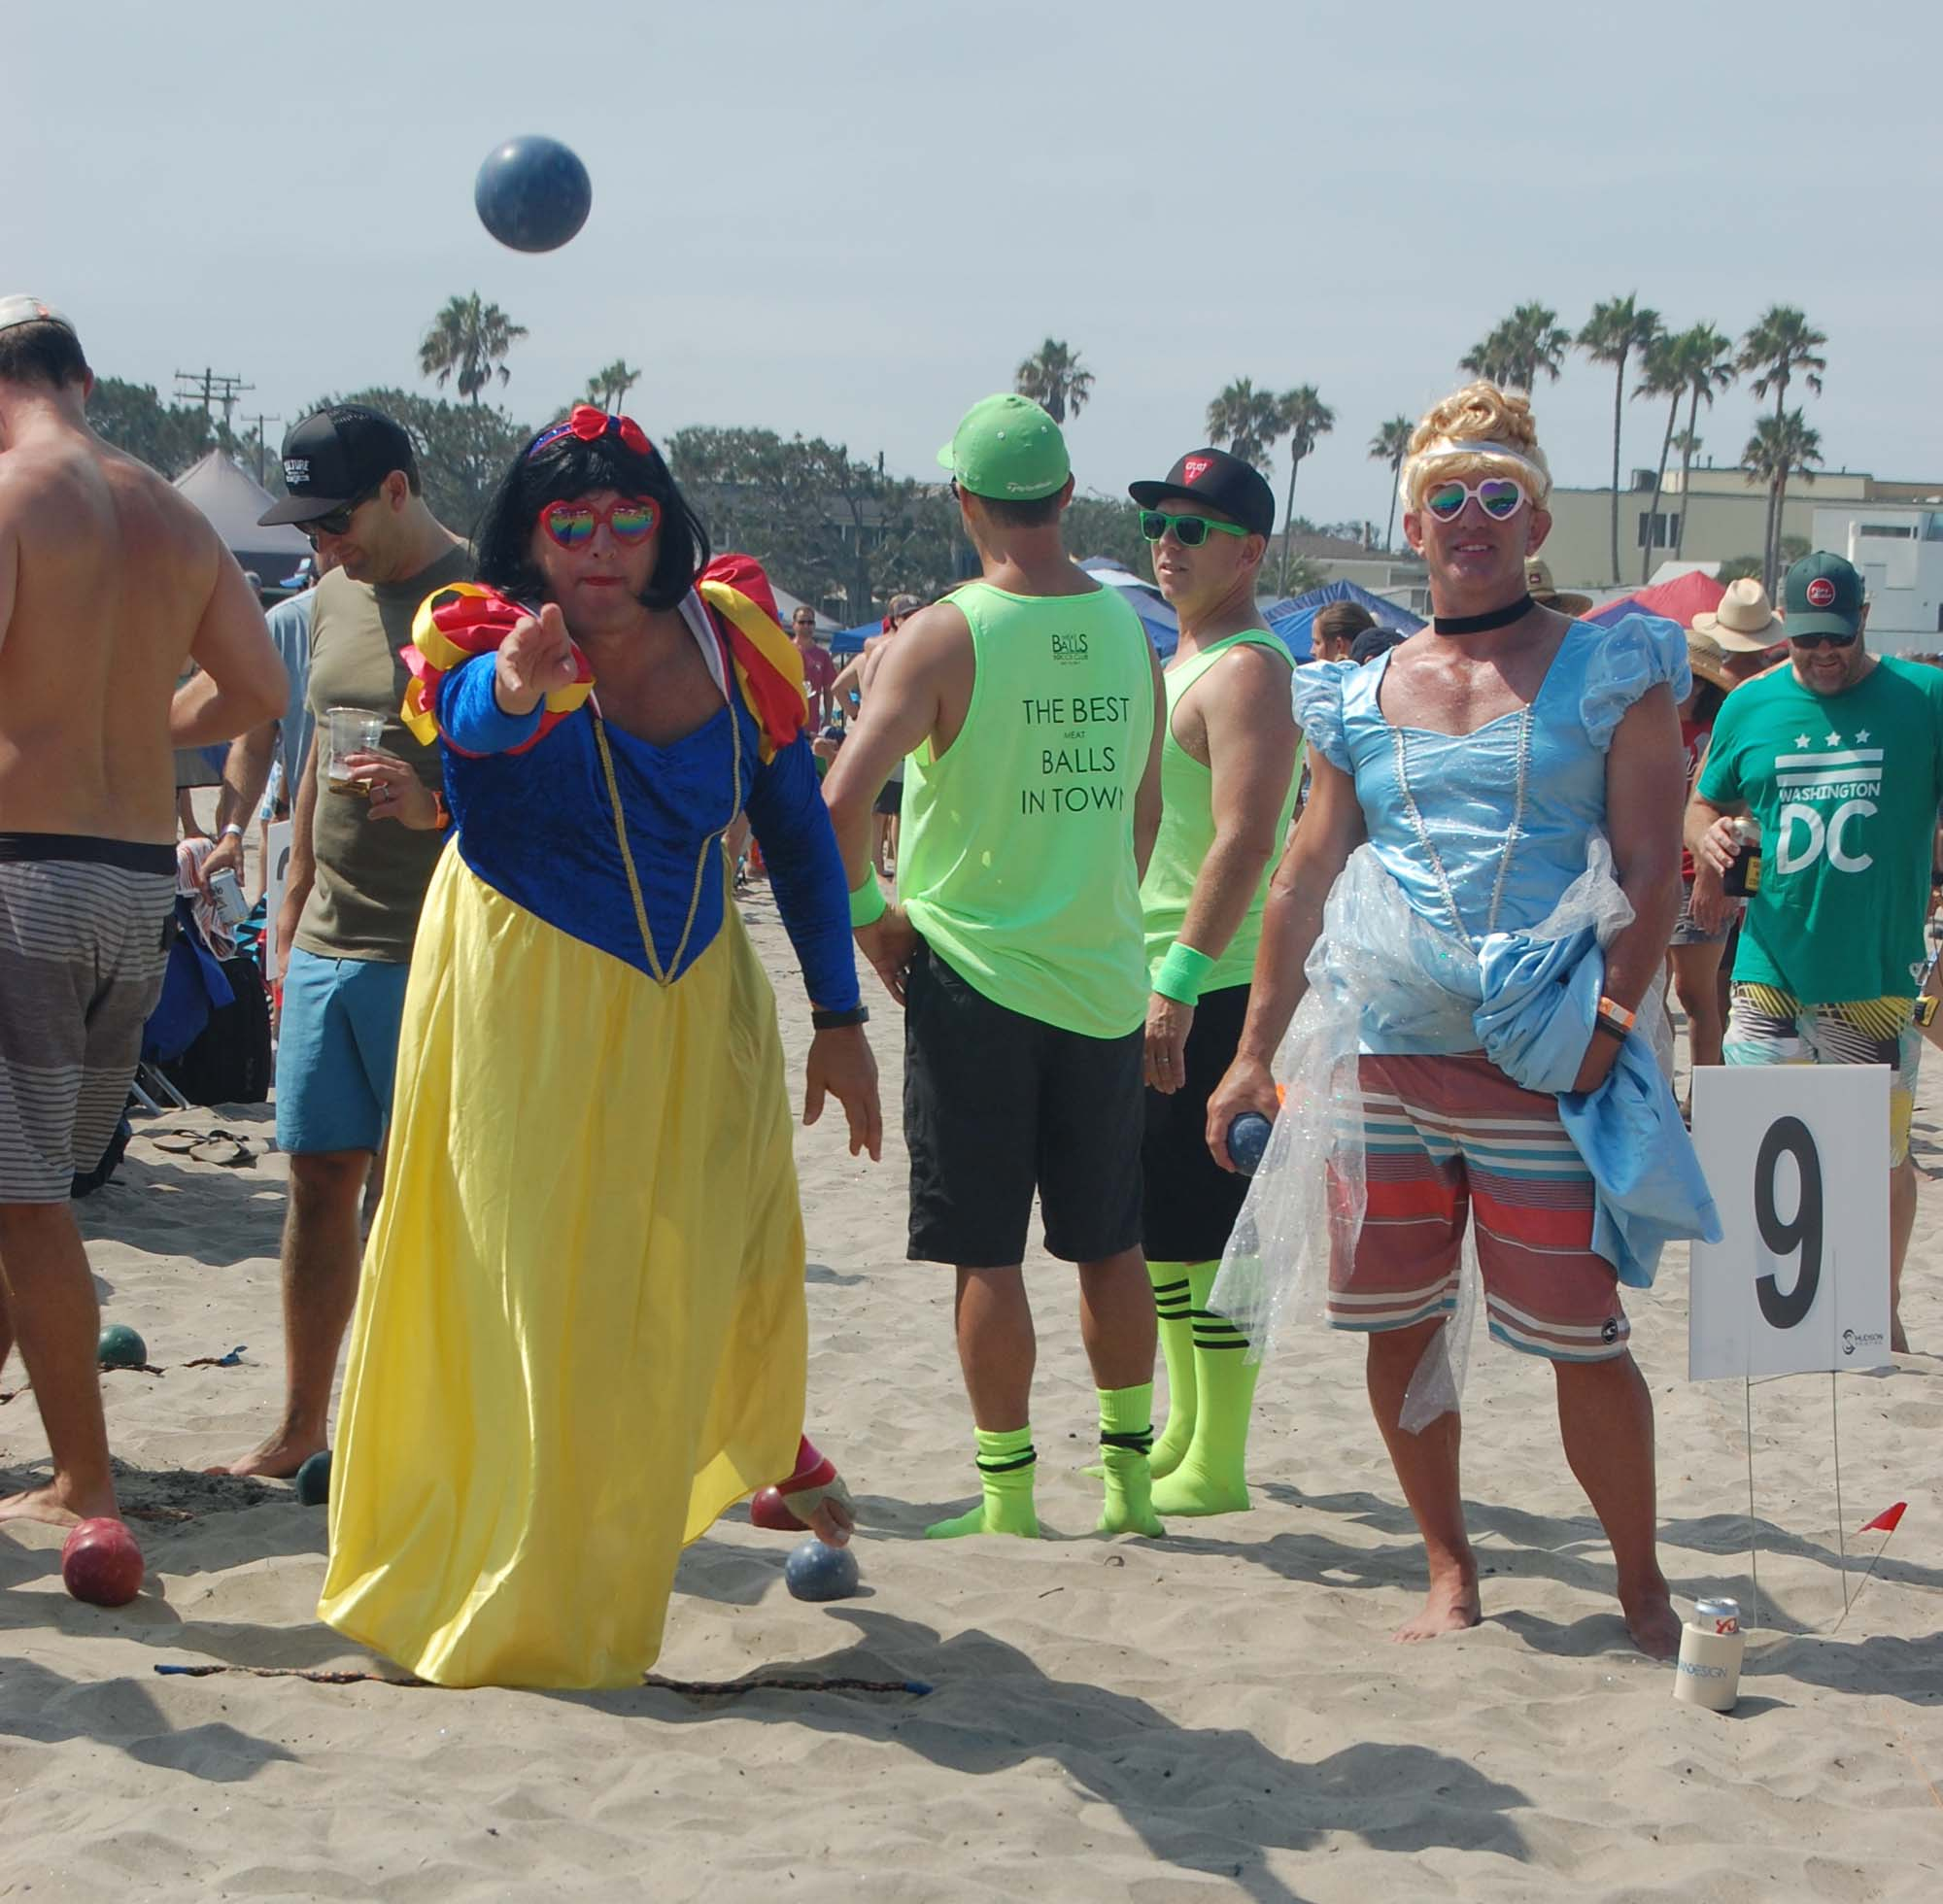 Bocce players have a ball on the beach